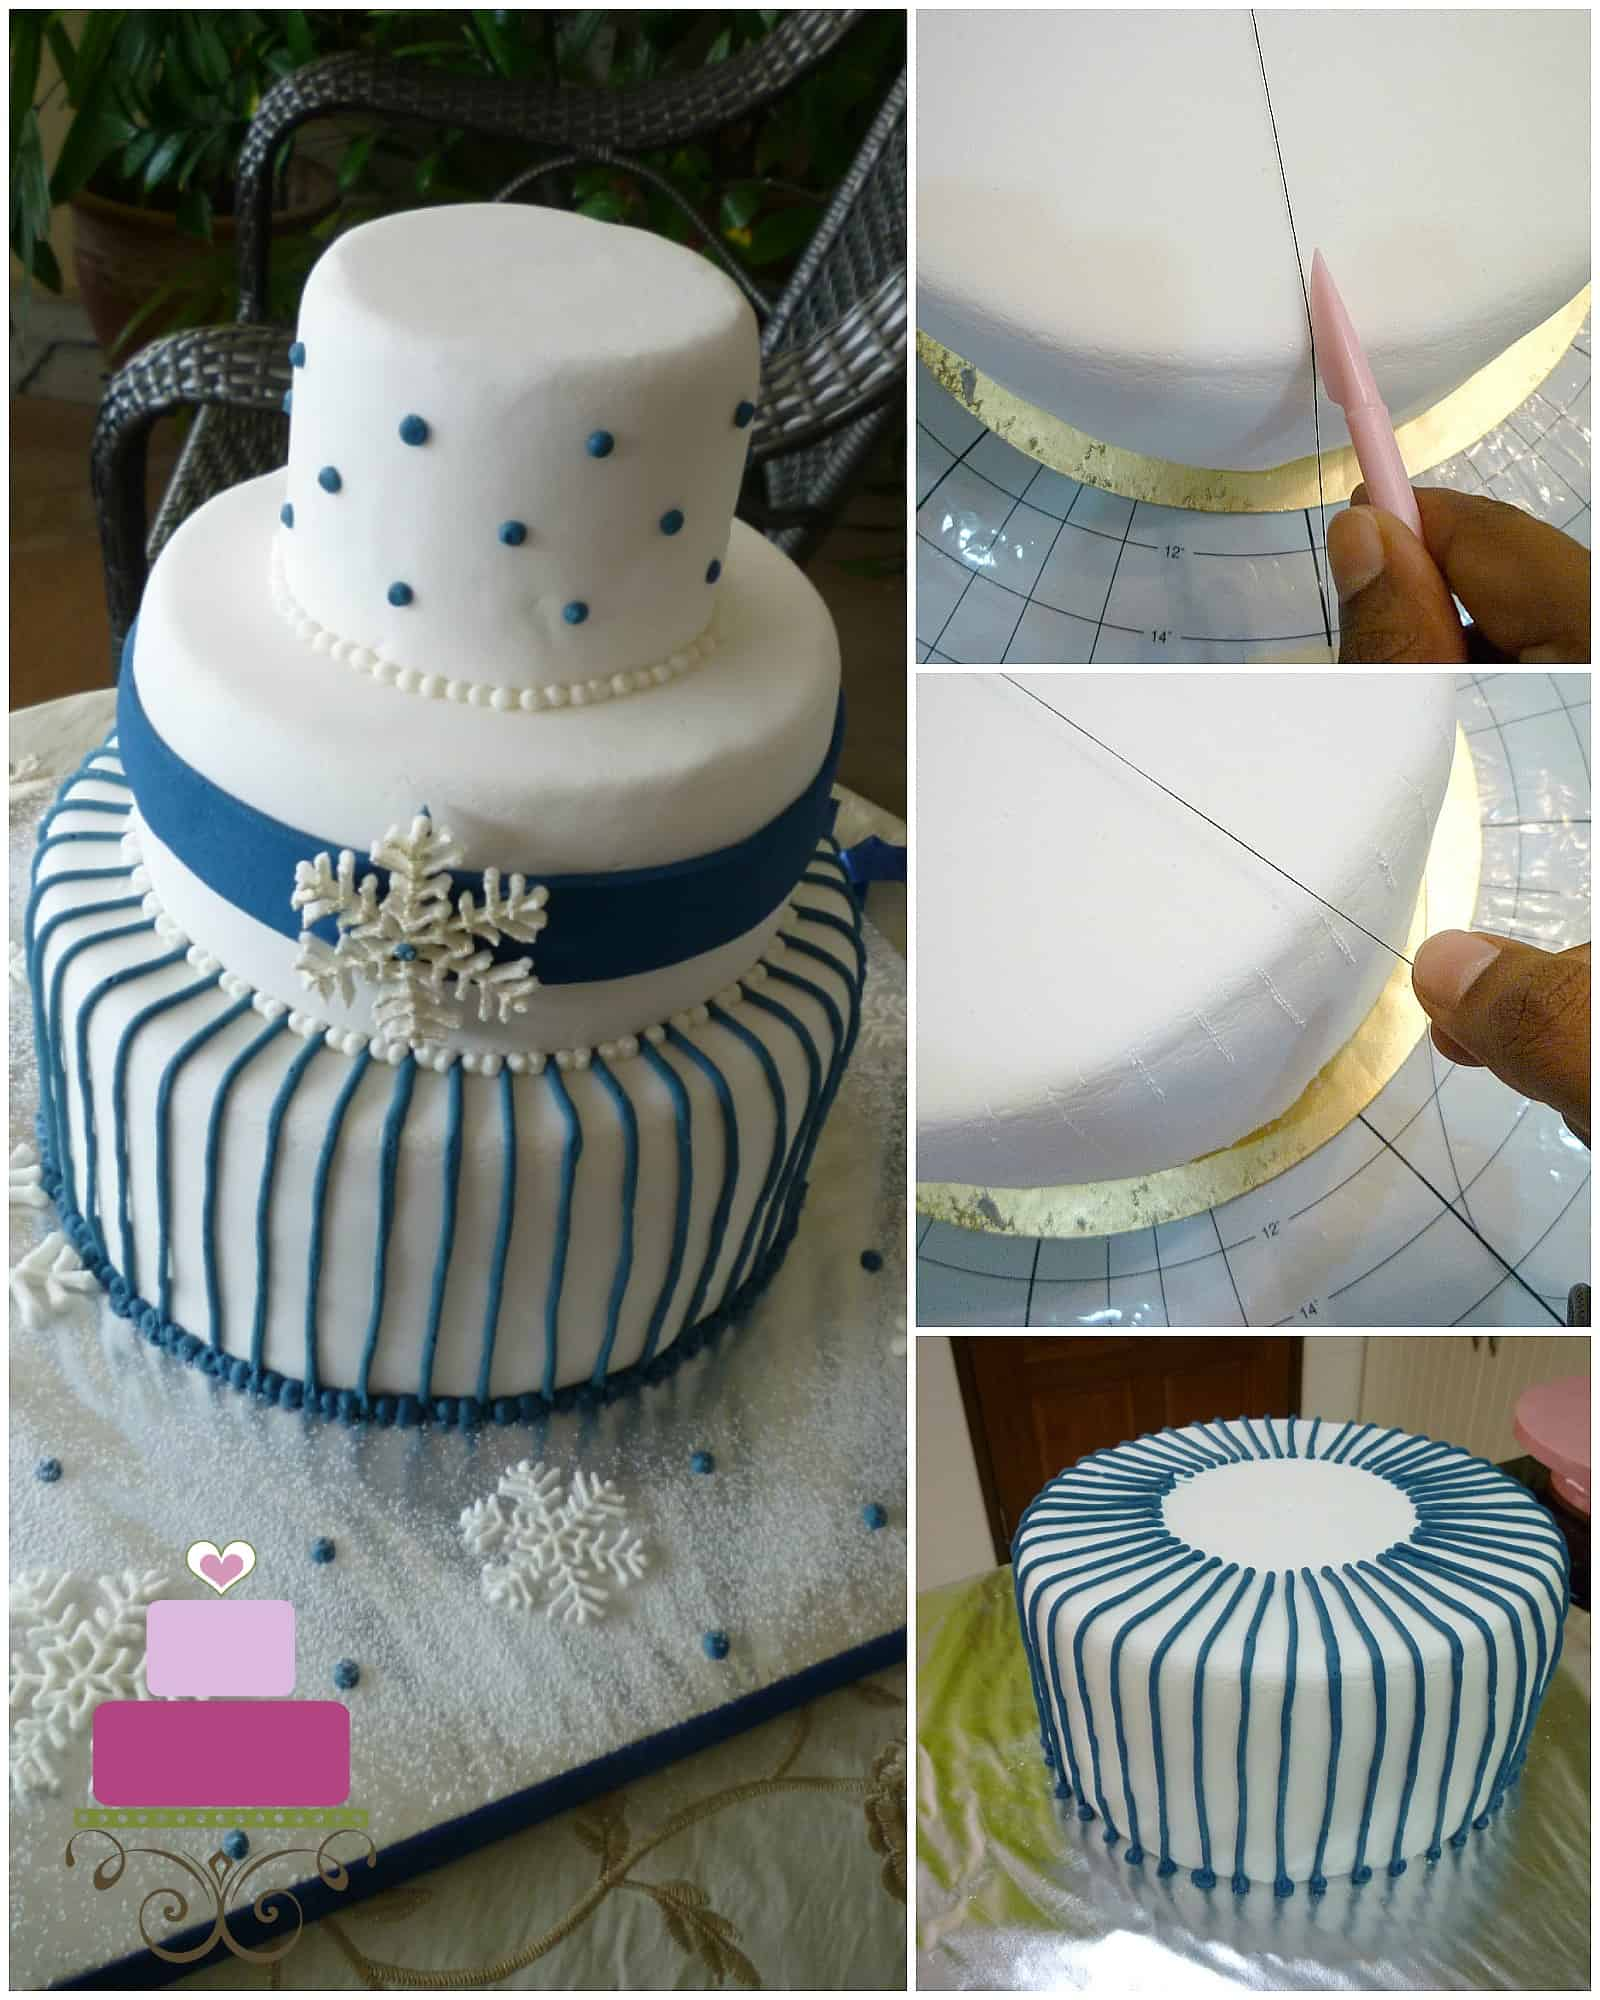 Poster for piping consistent lines on cakes